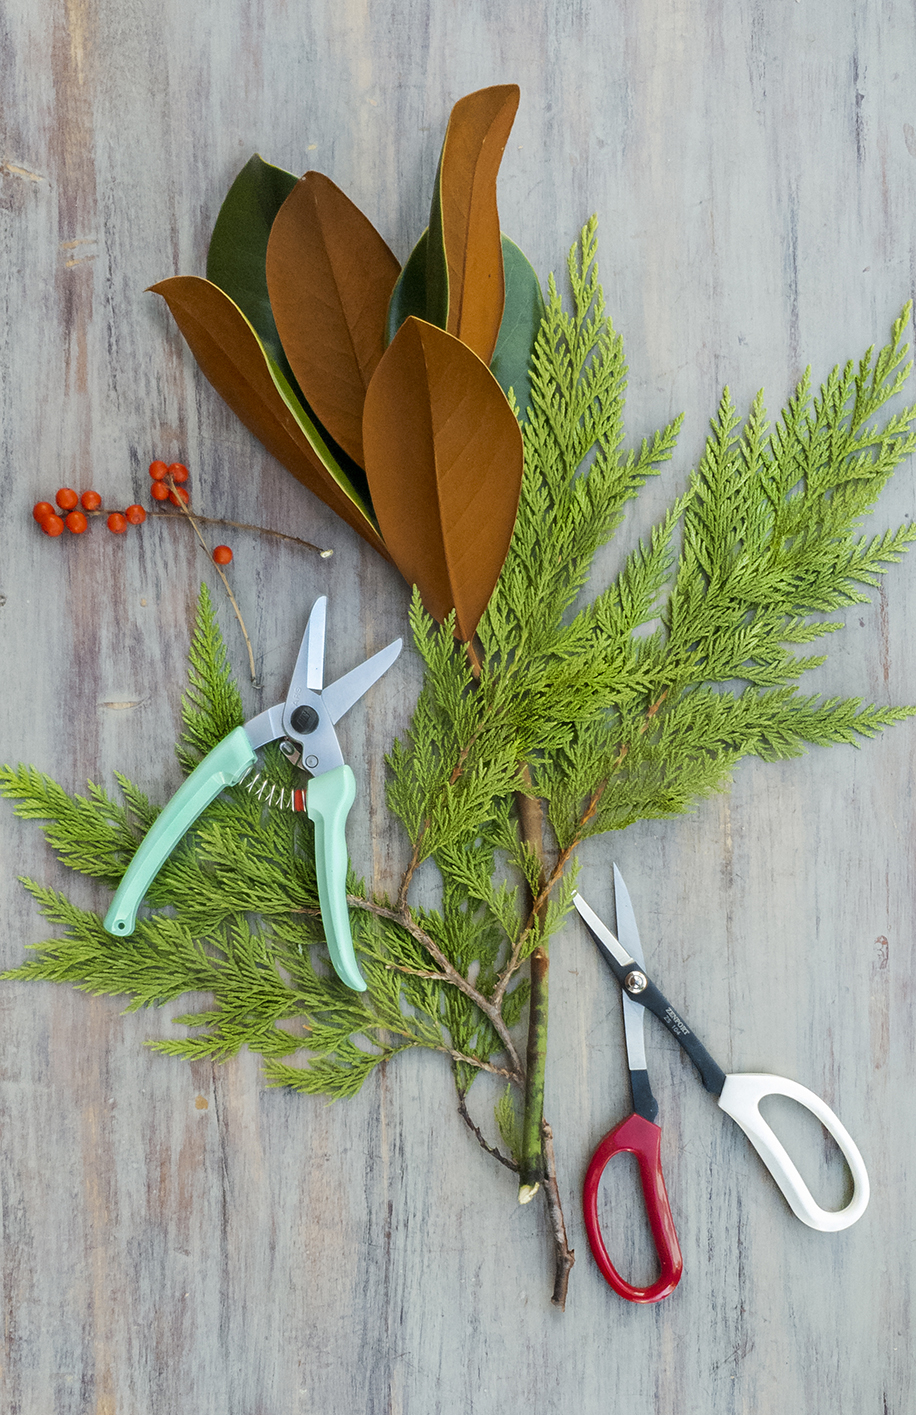 Holiday flower arranging class tools